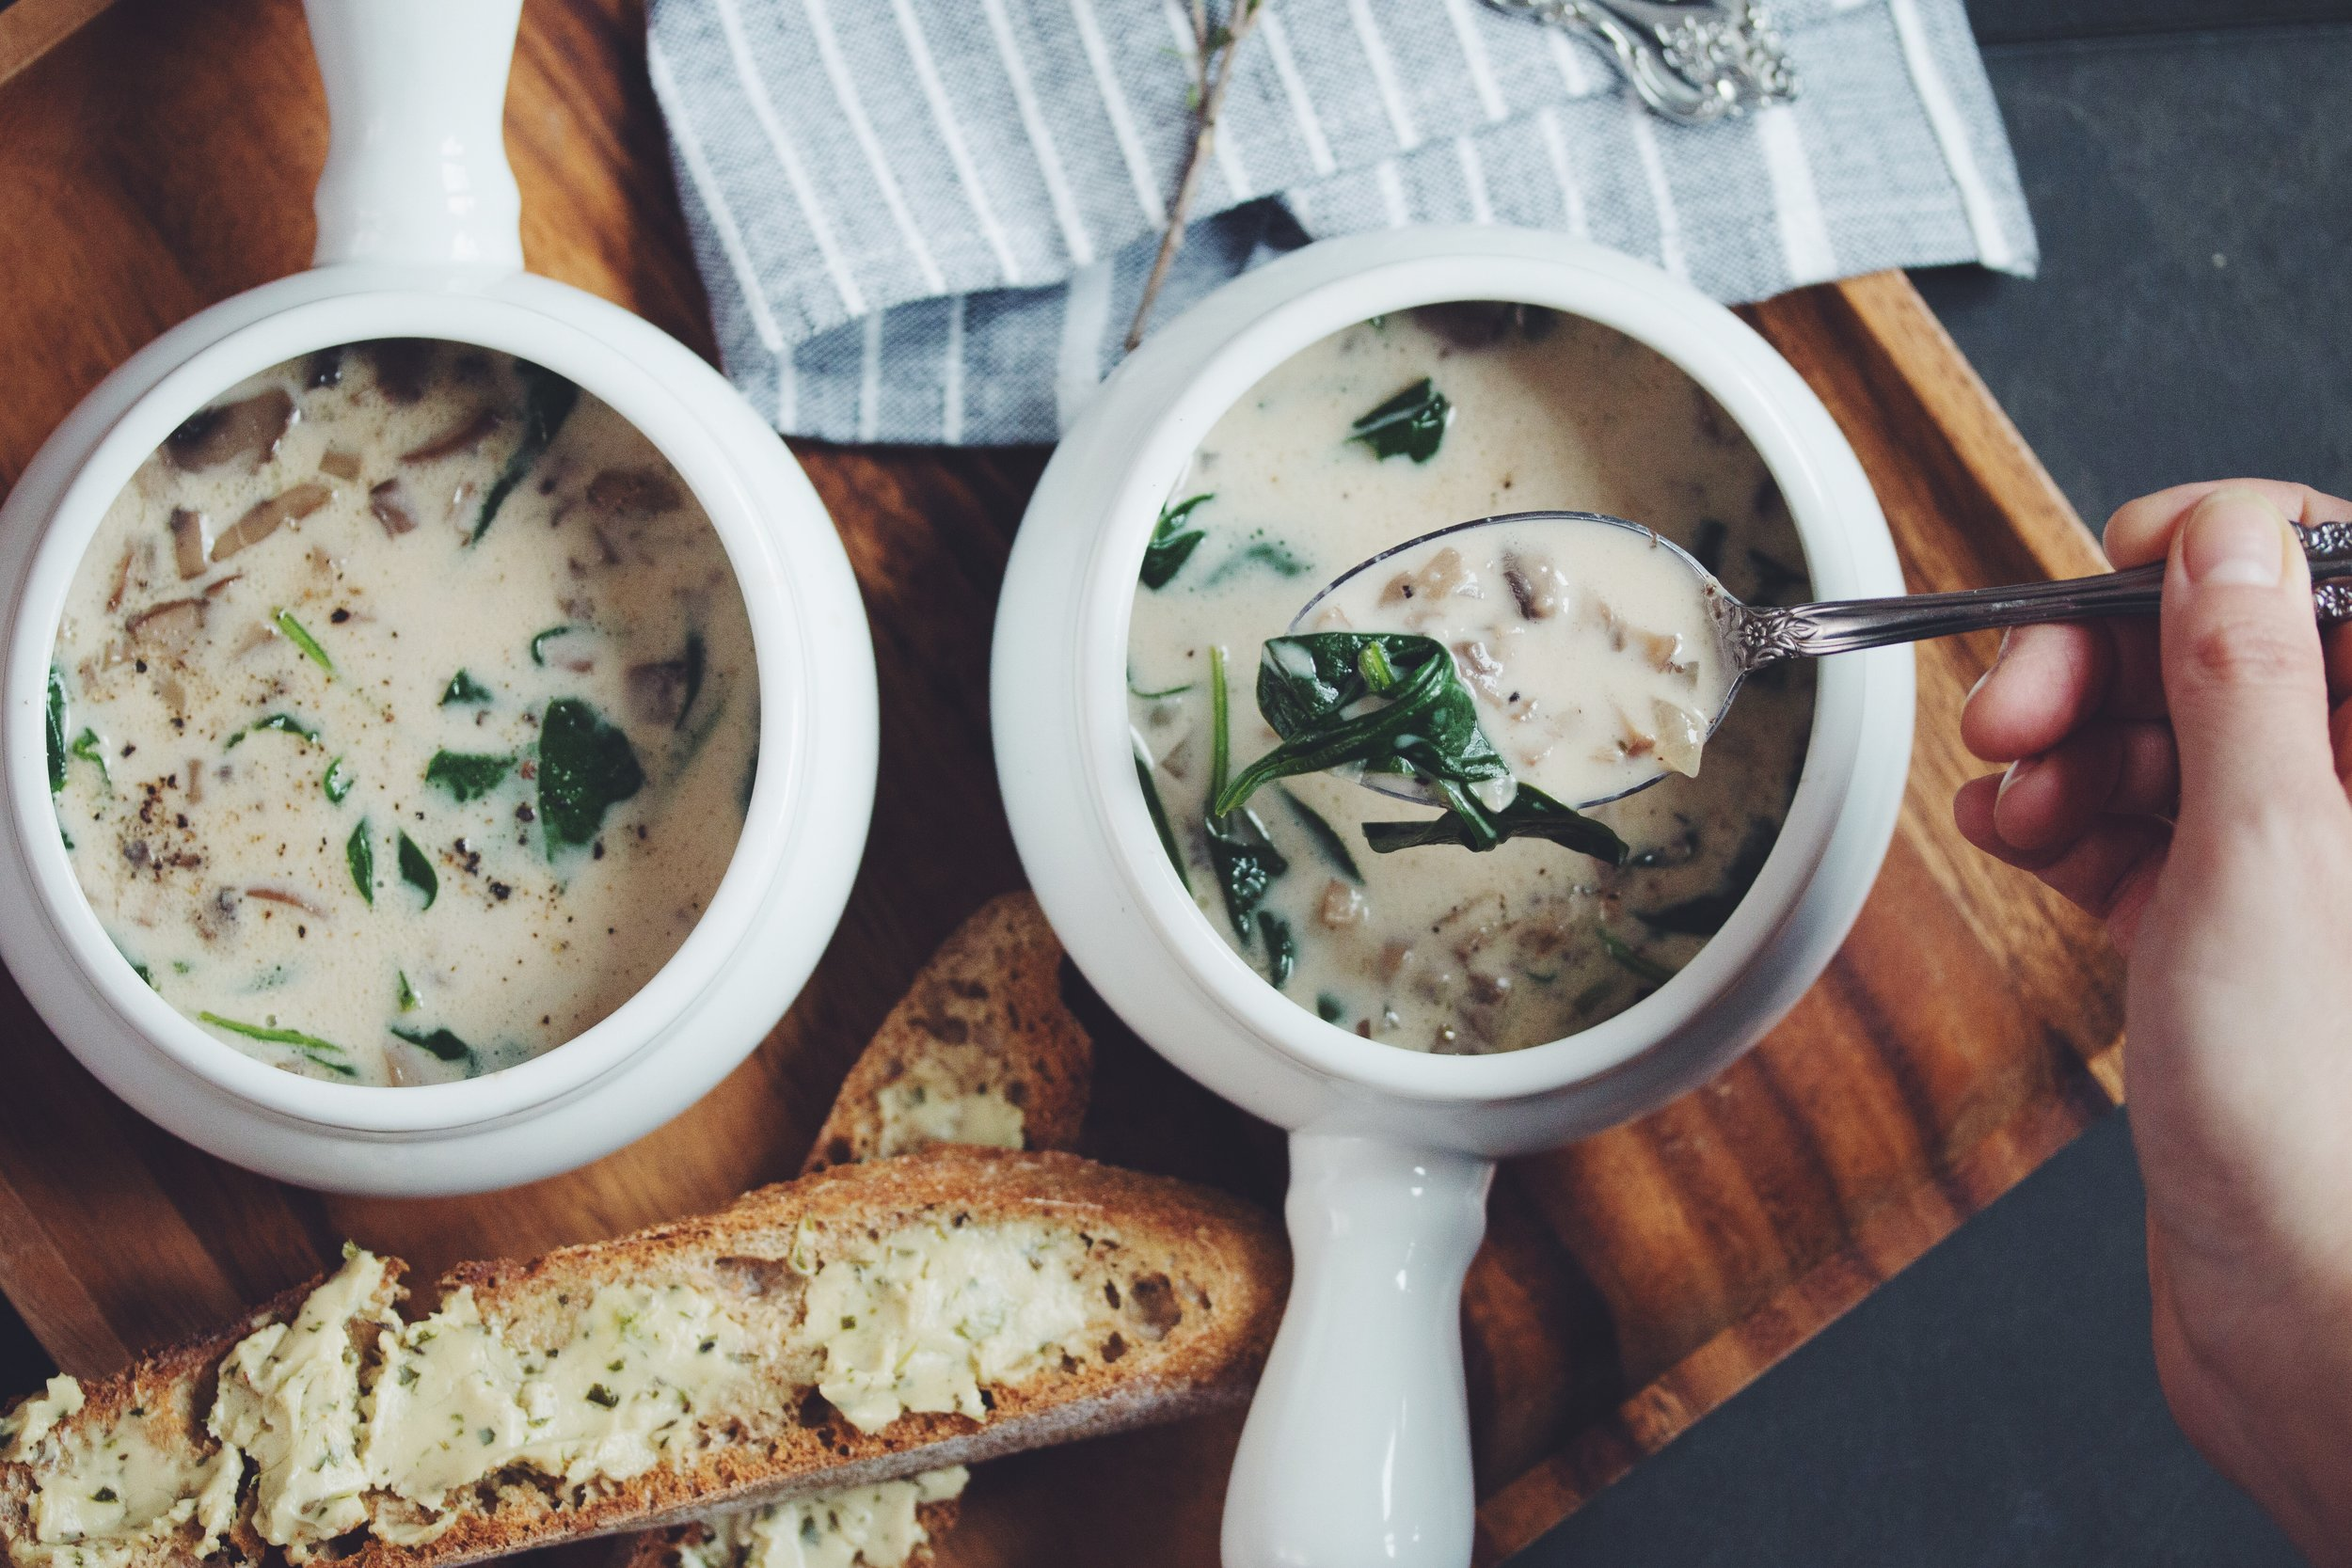 cream of mushroom soup - warm up with this super savory soup that's just like the classic!